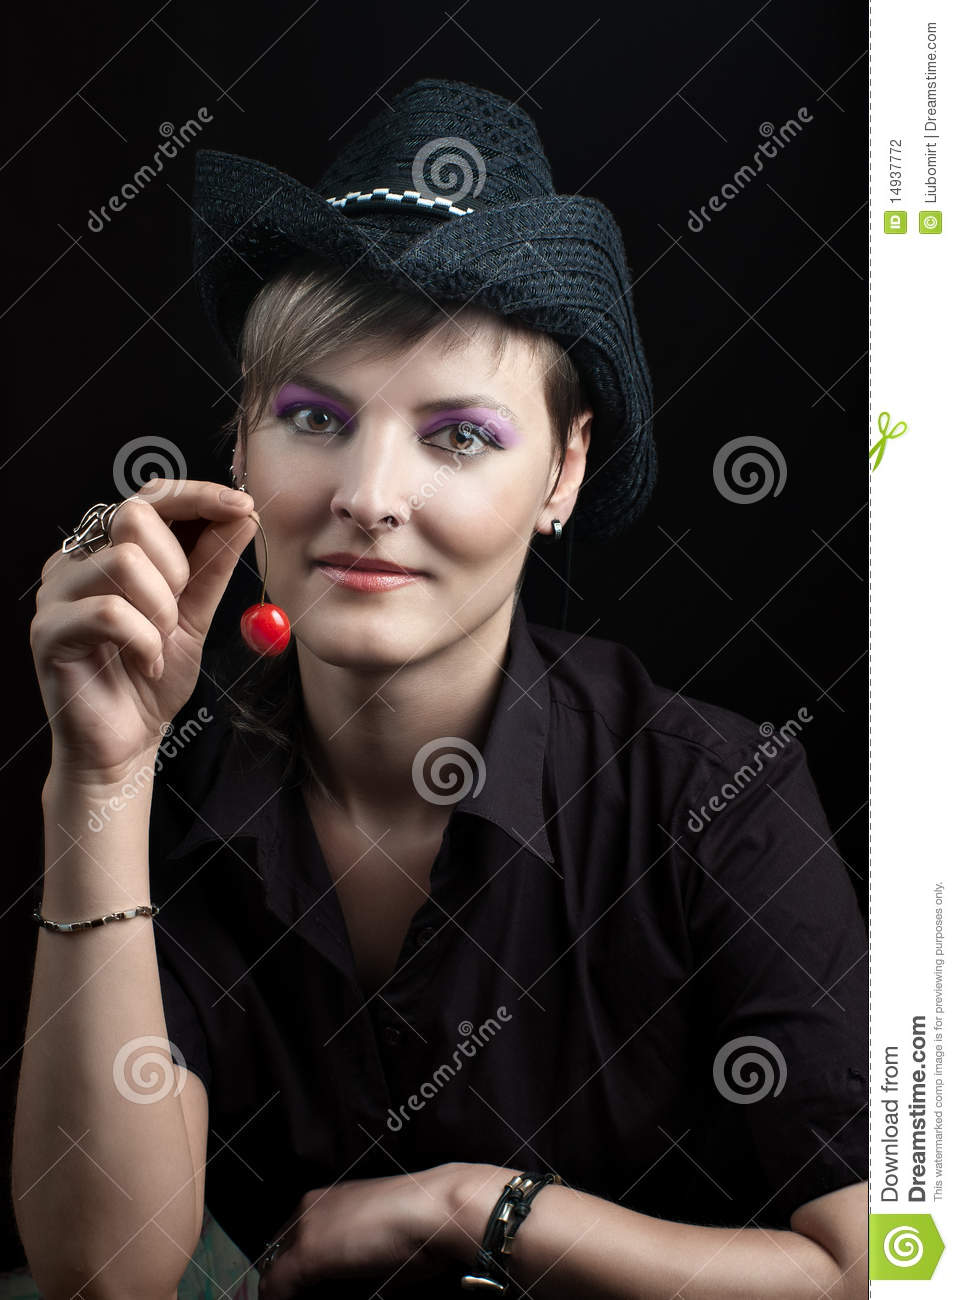 ba2d3b1bbb5 Young woman in black hat holding red cherry against dark background